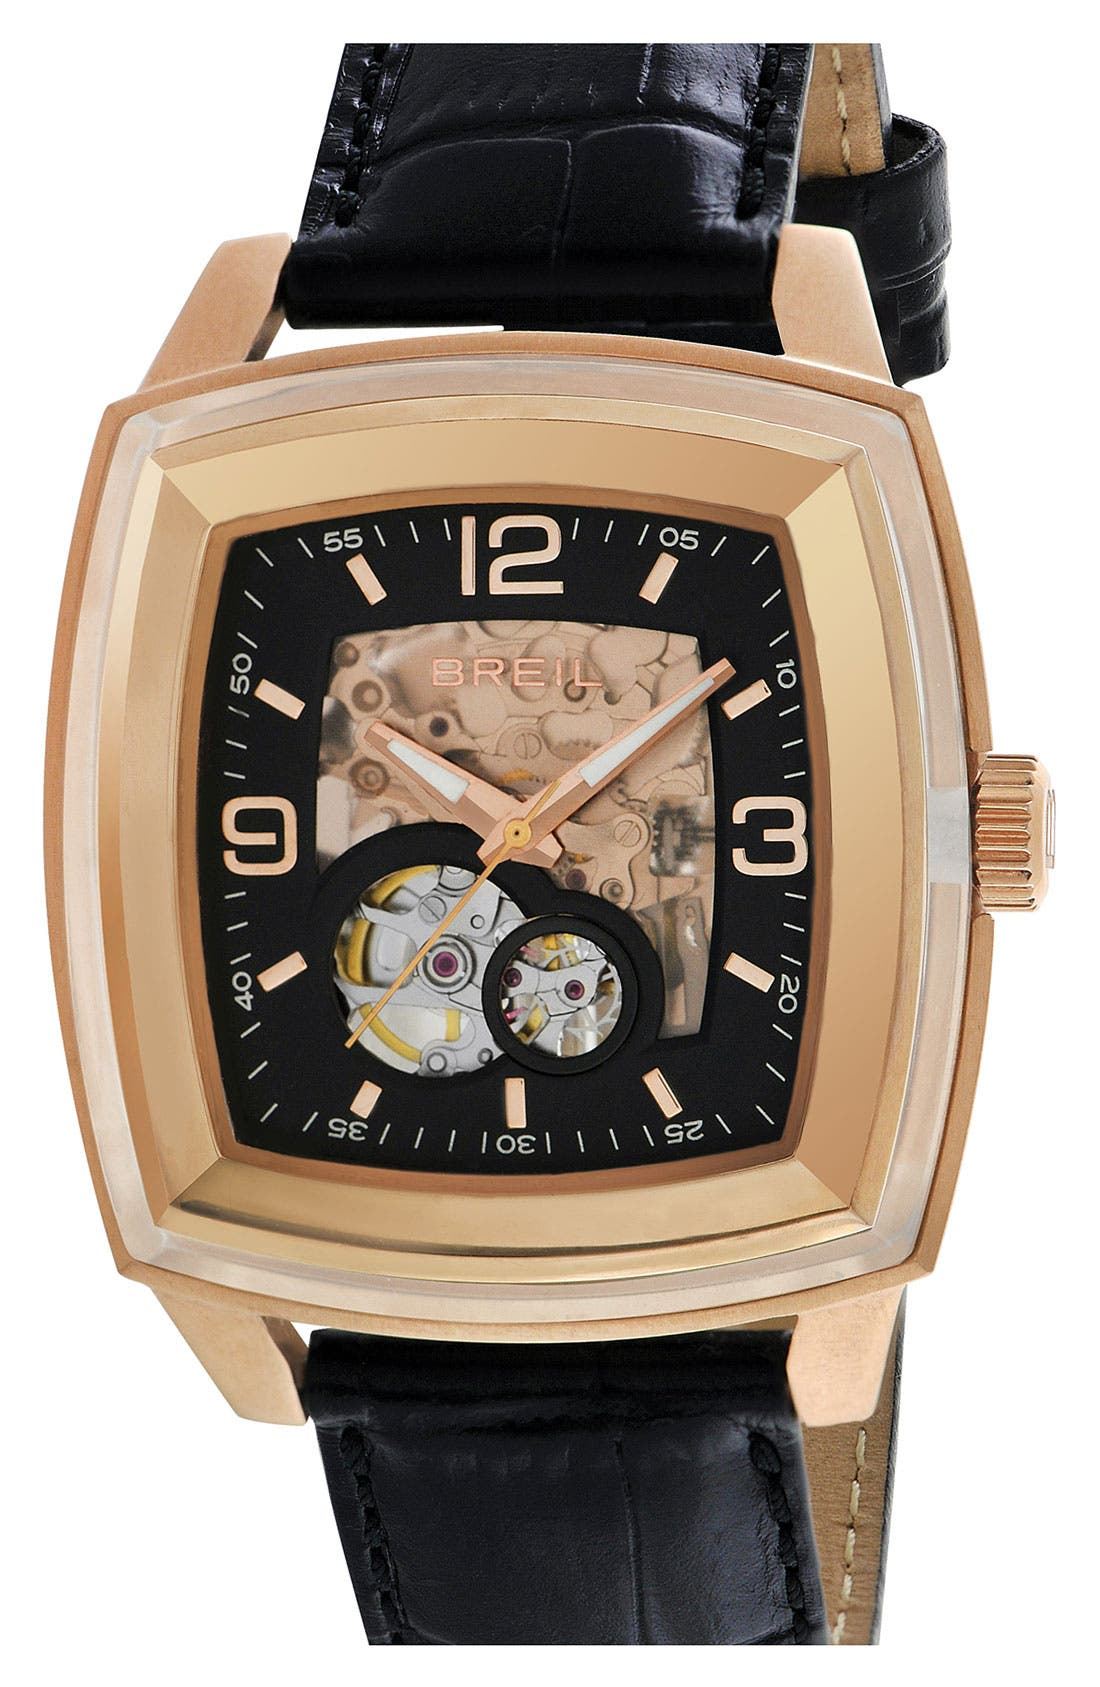 Main Image - Breil 'Orchestra' Square Automatic Watch, 42mm